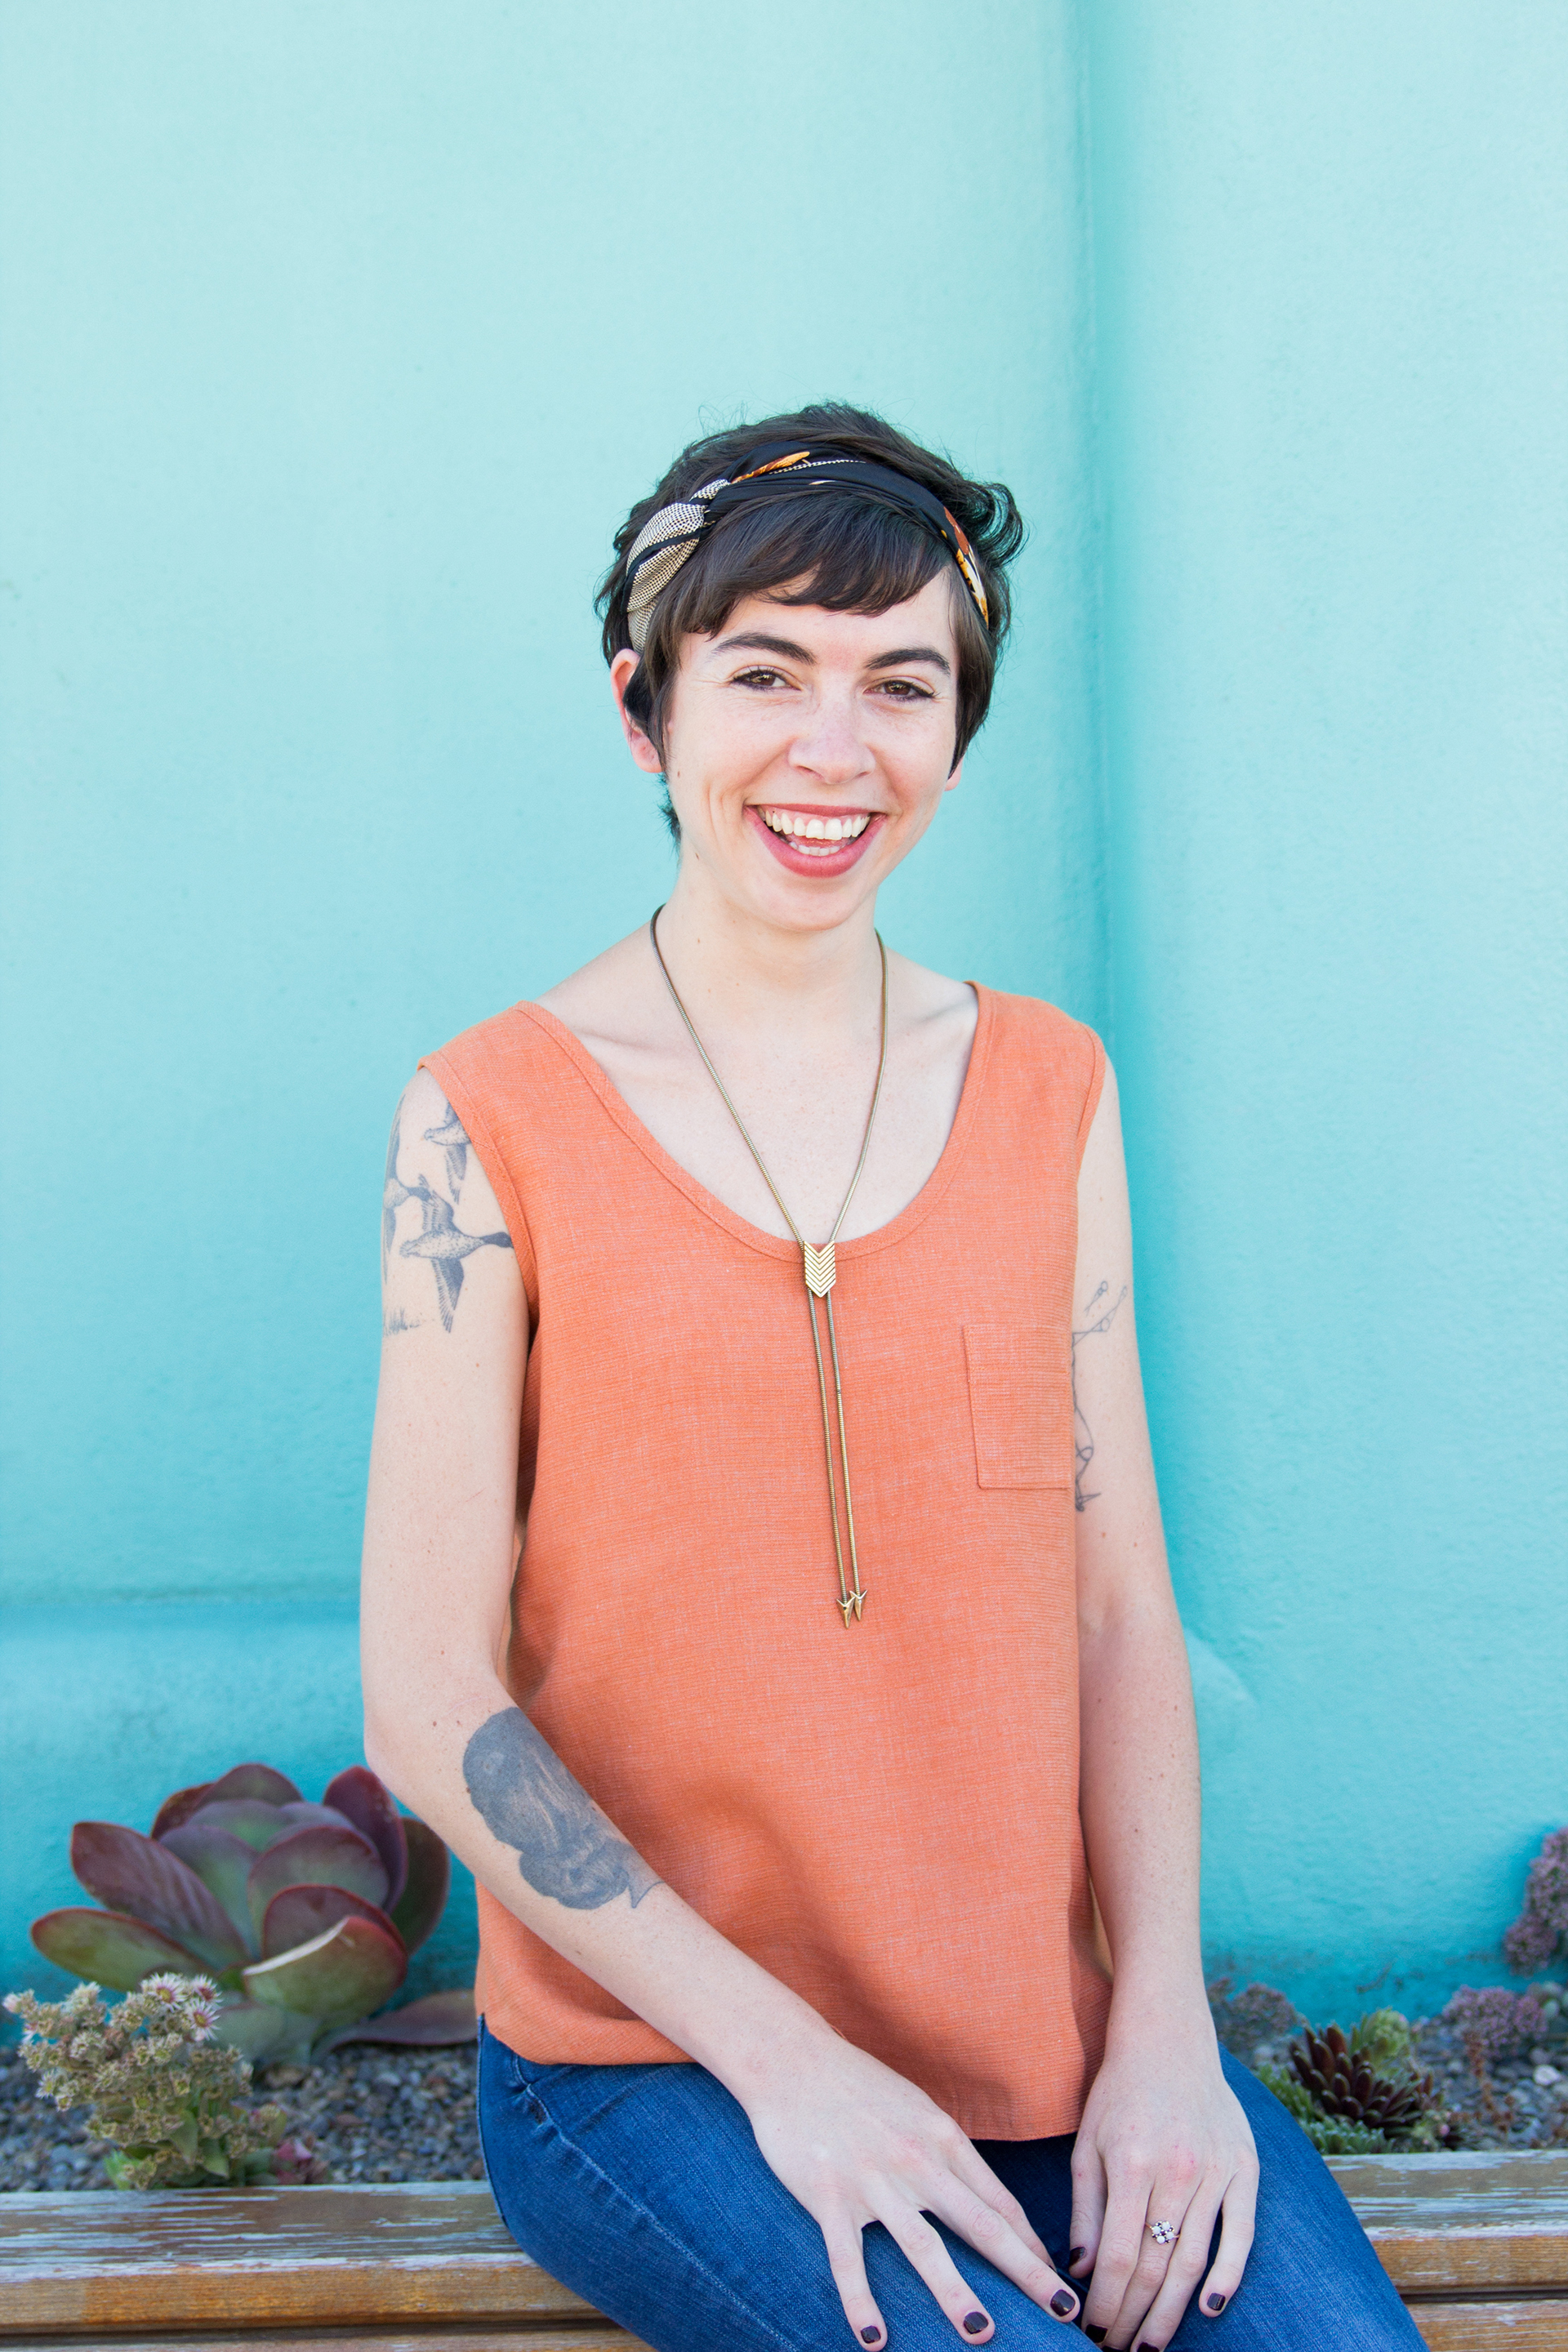 KATIE WHITTLE     Maker & Shaker         •    Sewist    •    Pattern Maker    •    Educator    Katie is a professional sewing writer, educator & pattern-maker based in Portland, OR. She loves making things, eating avocados, and drinking coffee way too late at night.   Katie teaches our intermediate garment sewing workshops, tech edits our patterns & reps our bag pattern line.